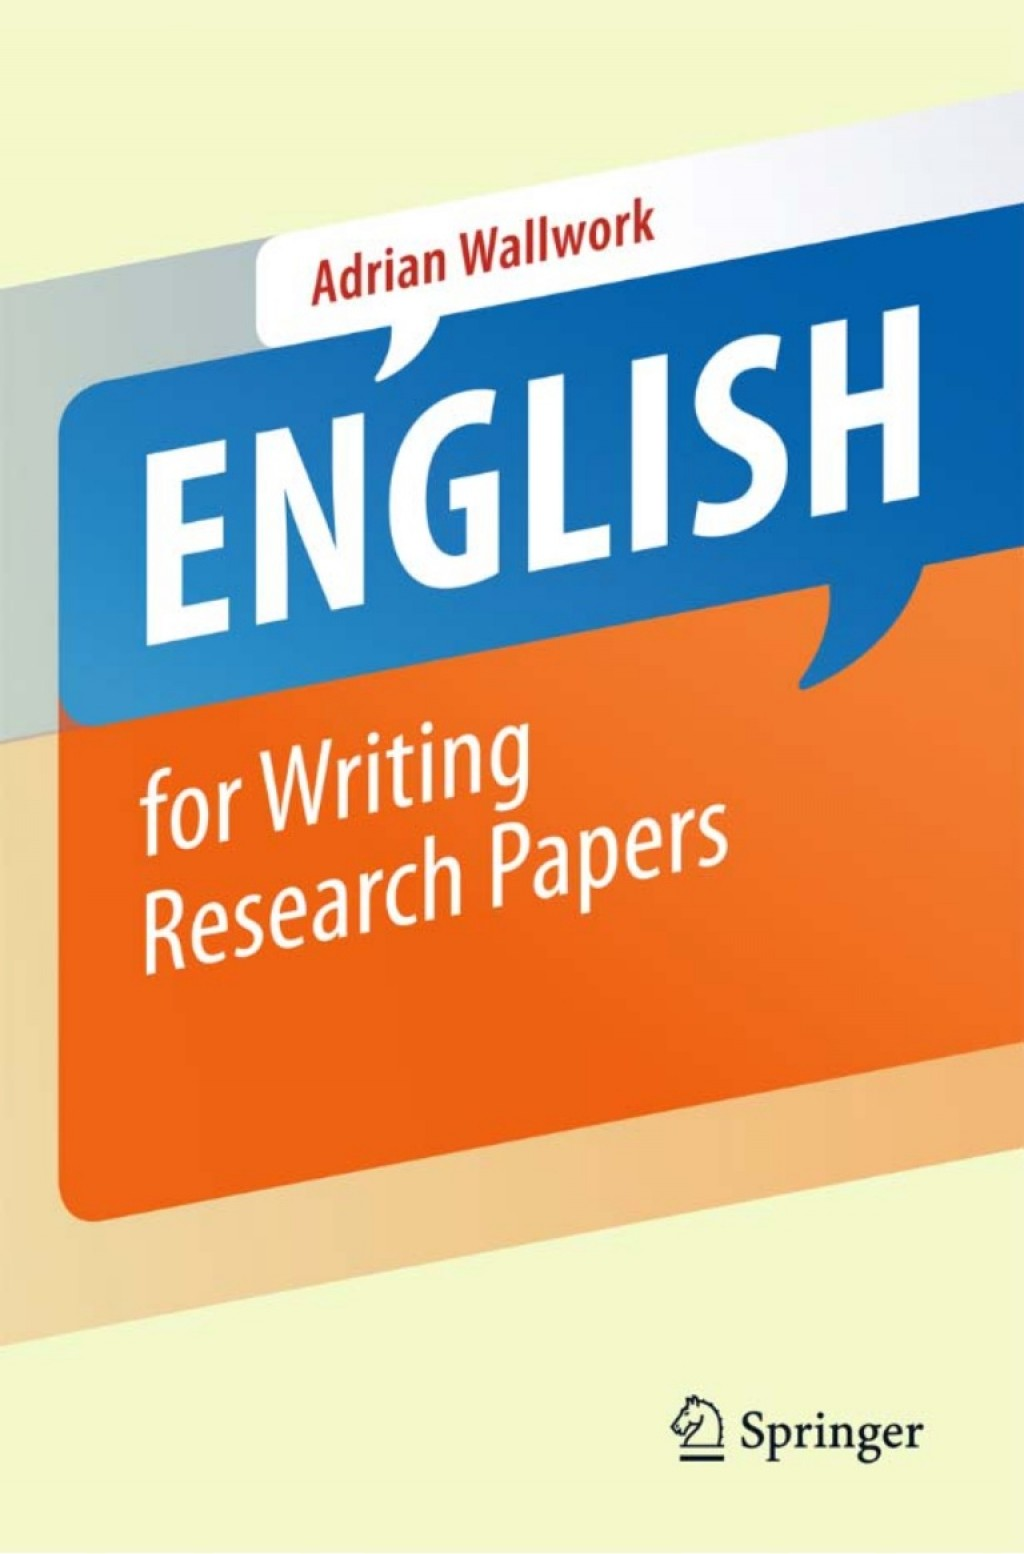 019 Englishforwritingresearchpapers Conversion Gate01 Thumbnail Writing Research Striking Paper Meme Papers A Complete Guide 15th Edition Pdf Free 16th Large